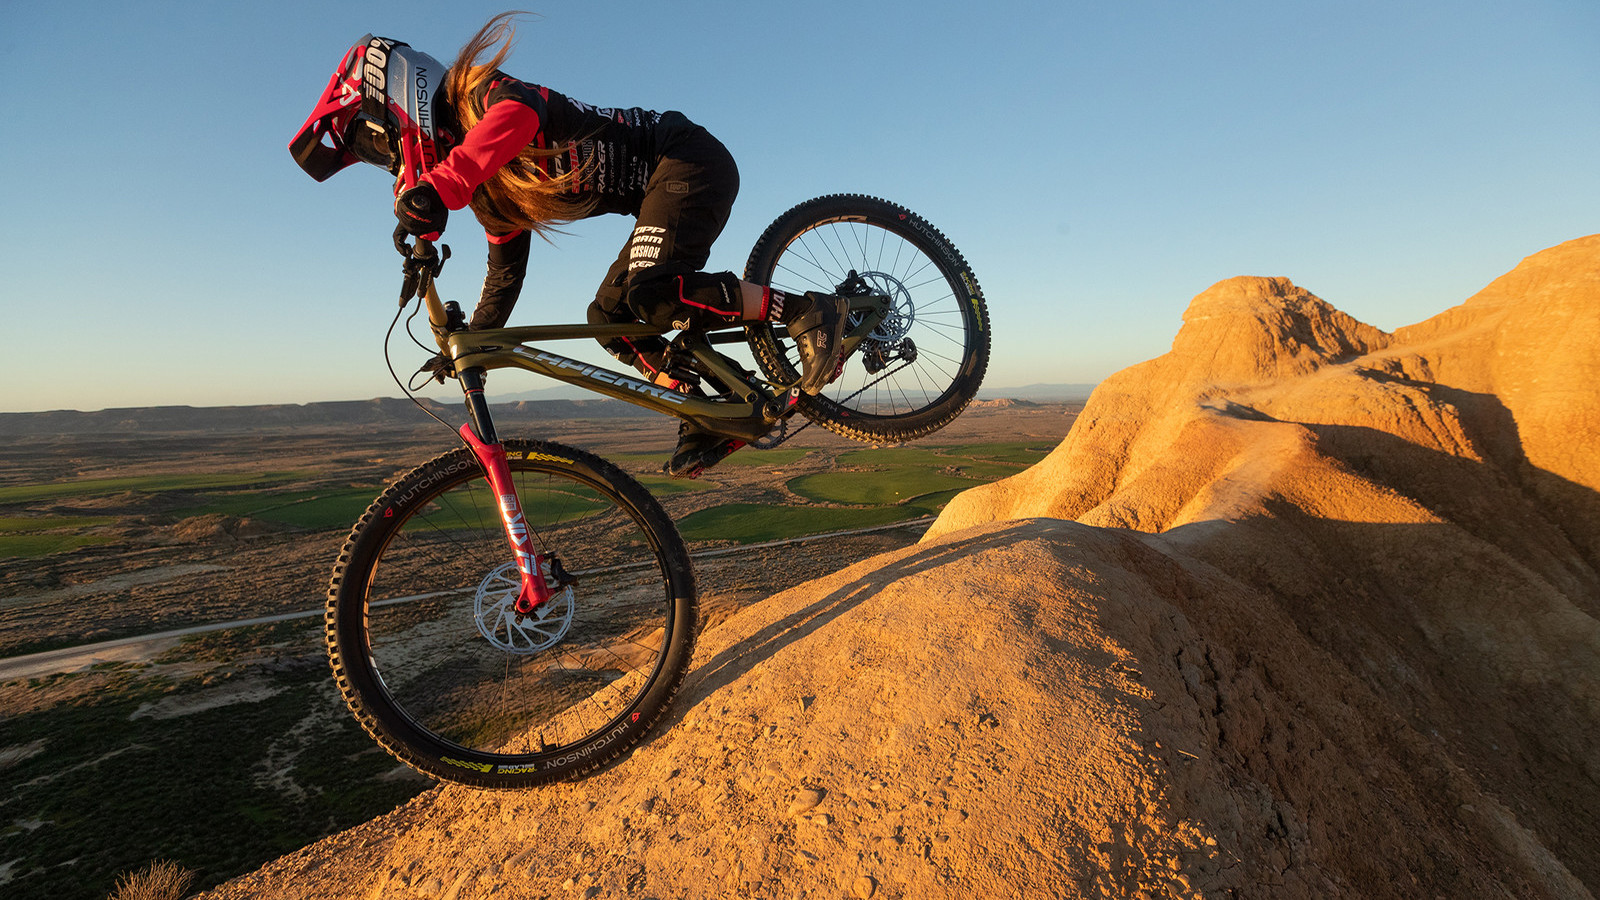 Ride Concepts Athlete Team Welcomes New Recruits